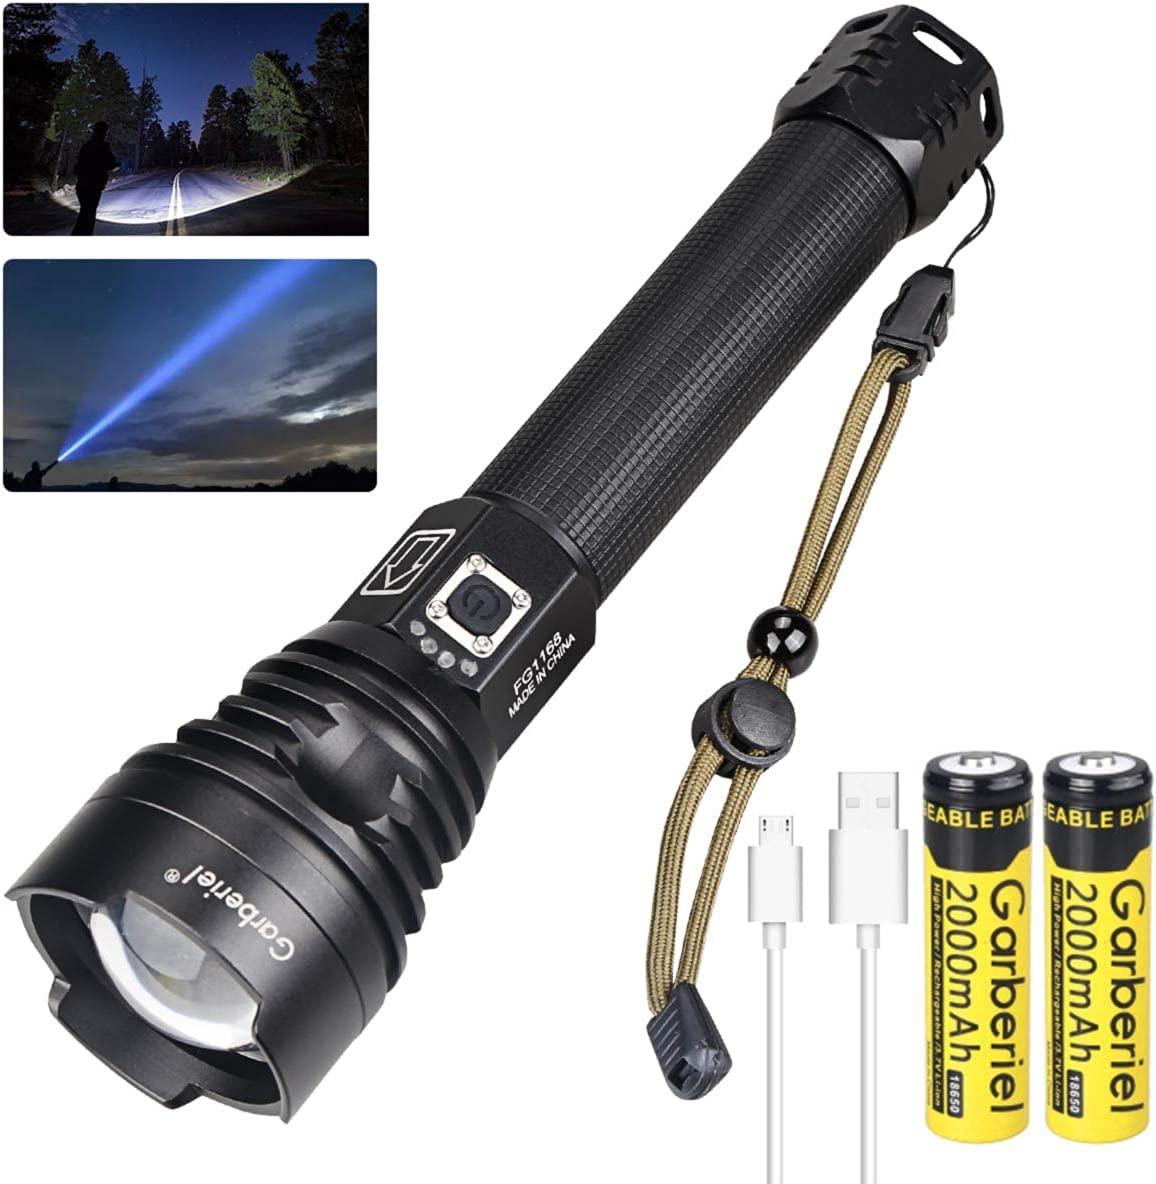 COB LED Flashlight USB Rechargeable Zoomable Tactical Torch USA Details about  /350000LM XHP90